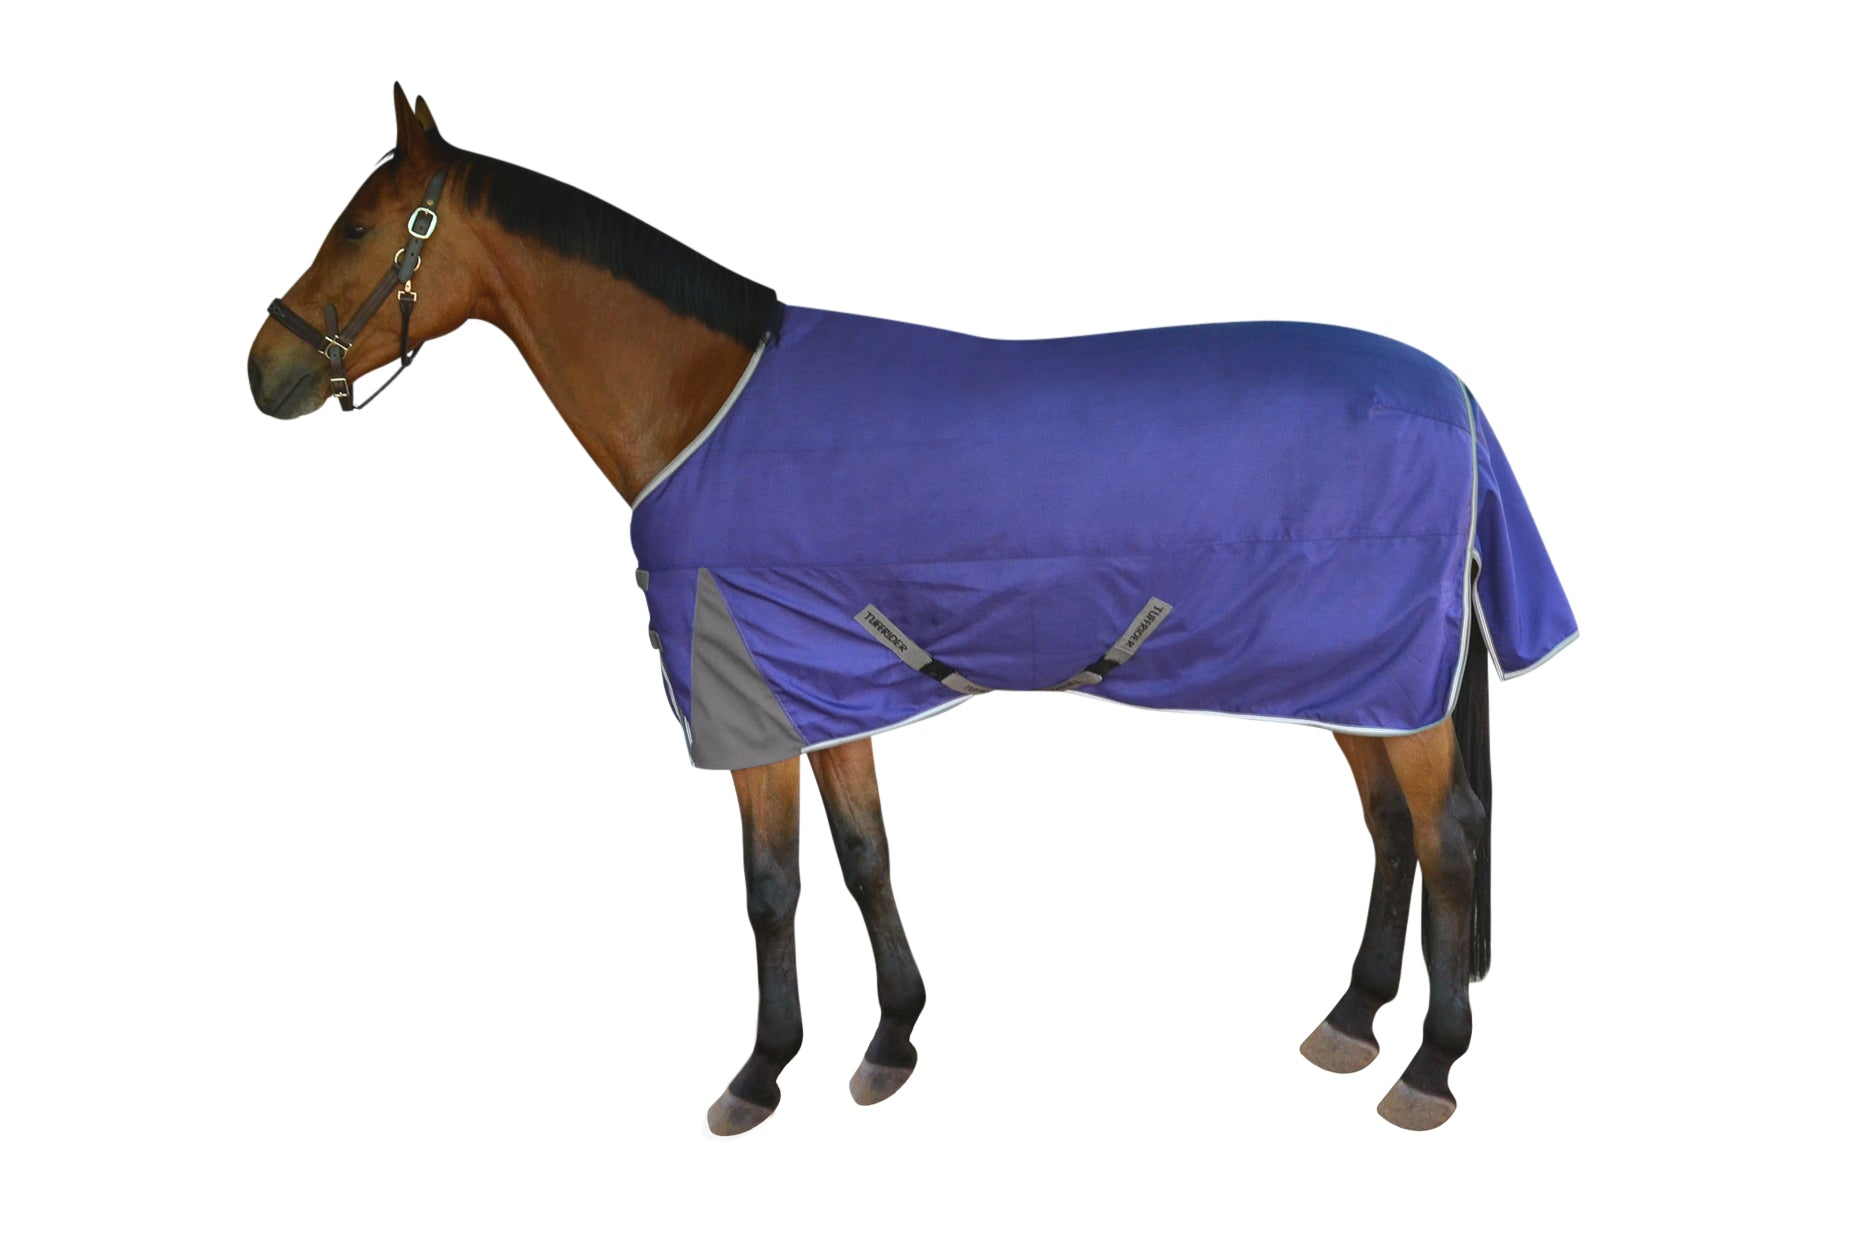 Major 1200D Ballistic Light Weight Turnout Sheet with Standard Neck - TuffRider - Breeches.com